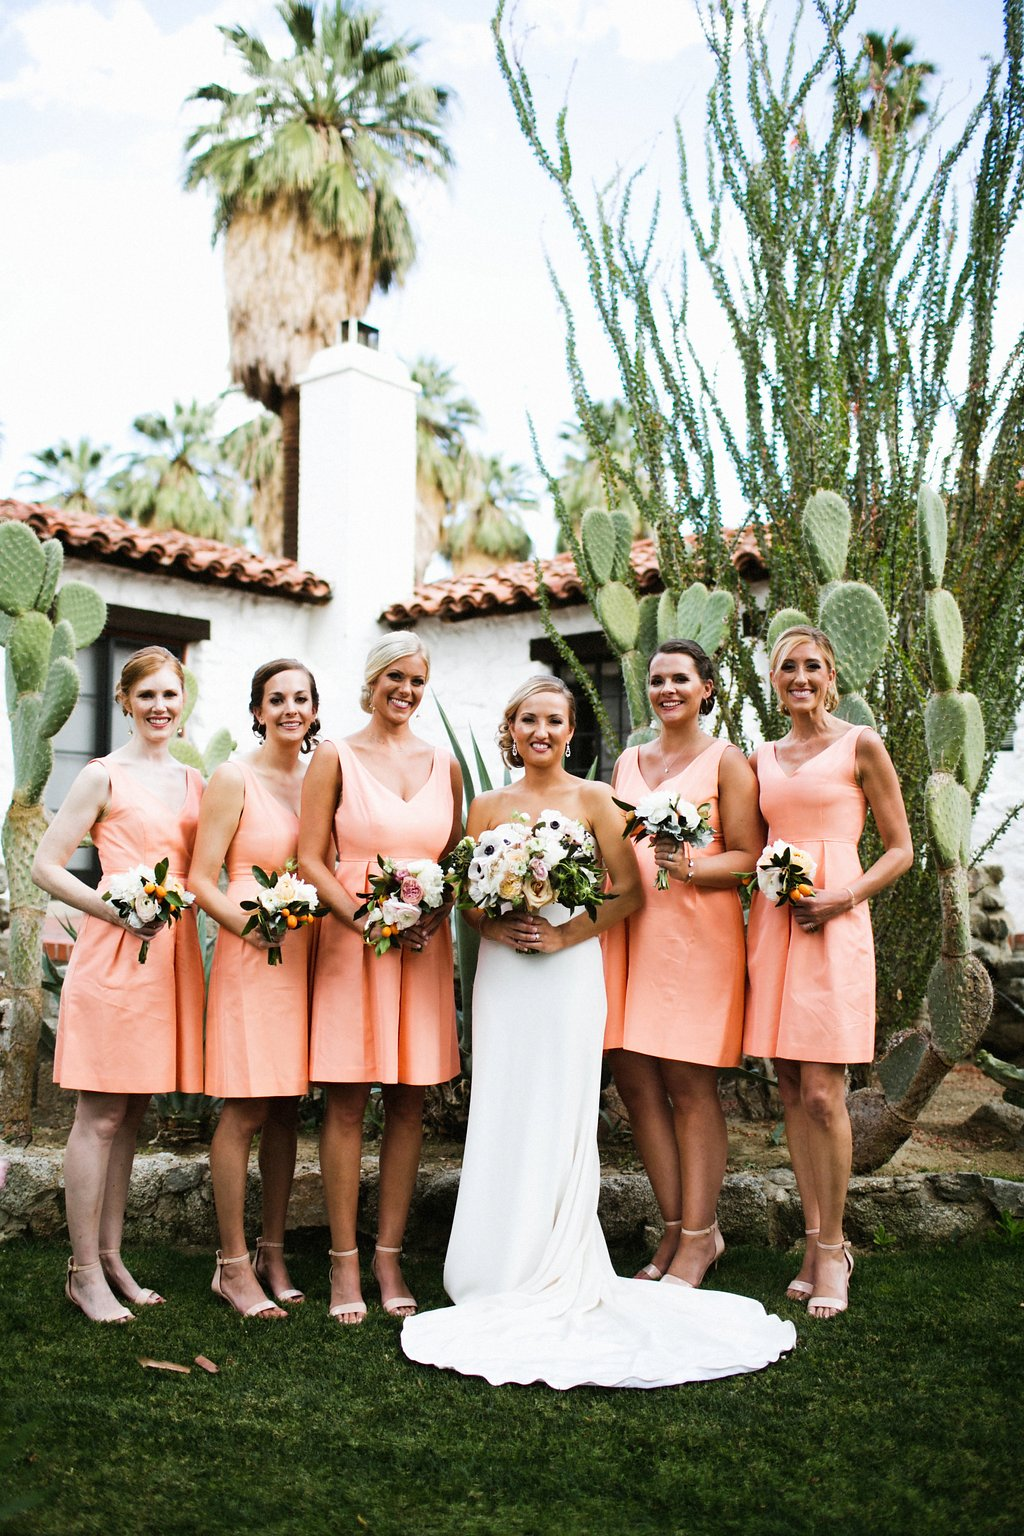 Coral short bridesmaids dresses